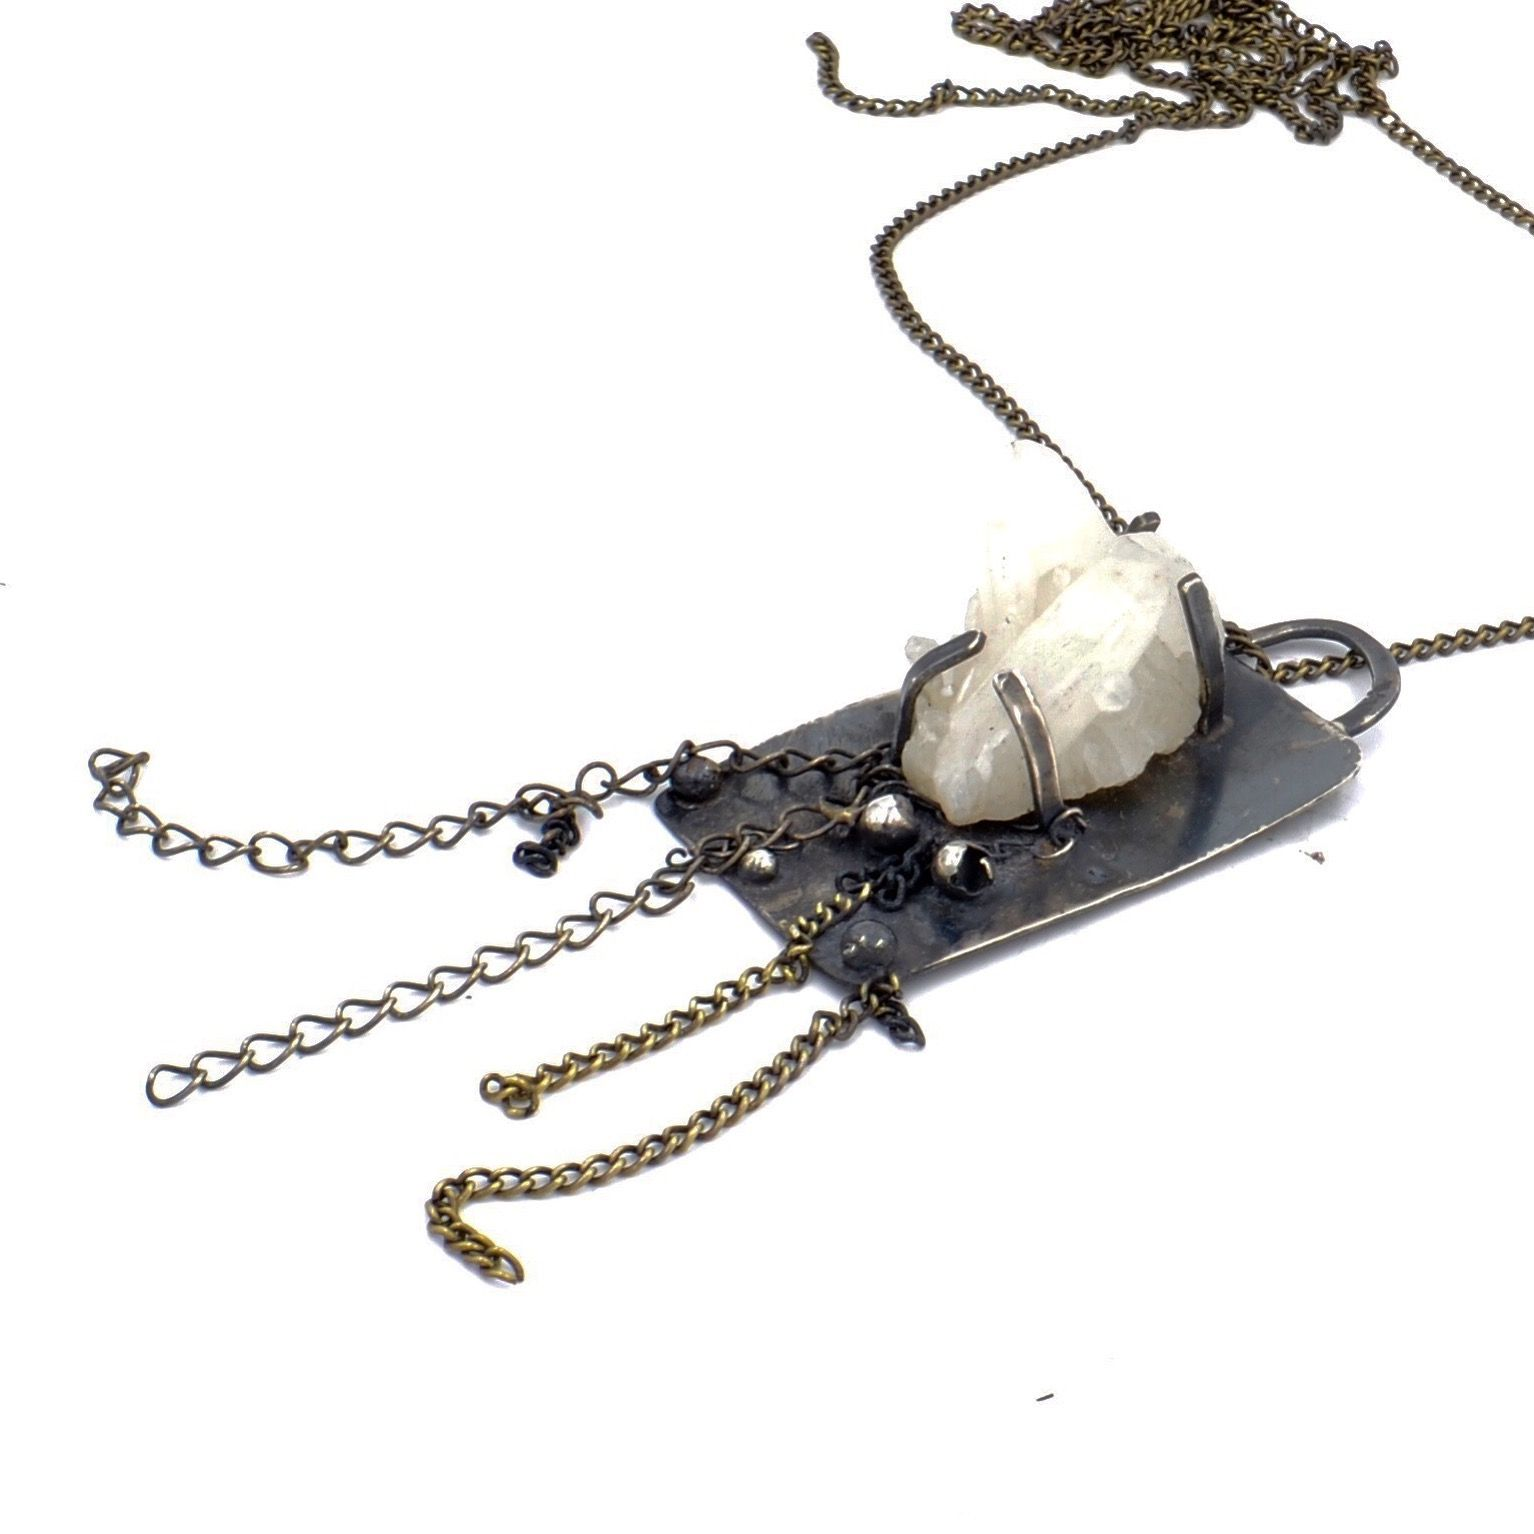 Oxidized sterling silver pendant necklace set with crystal clusters